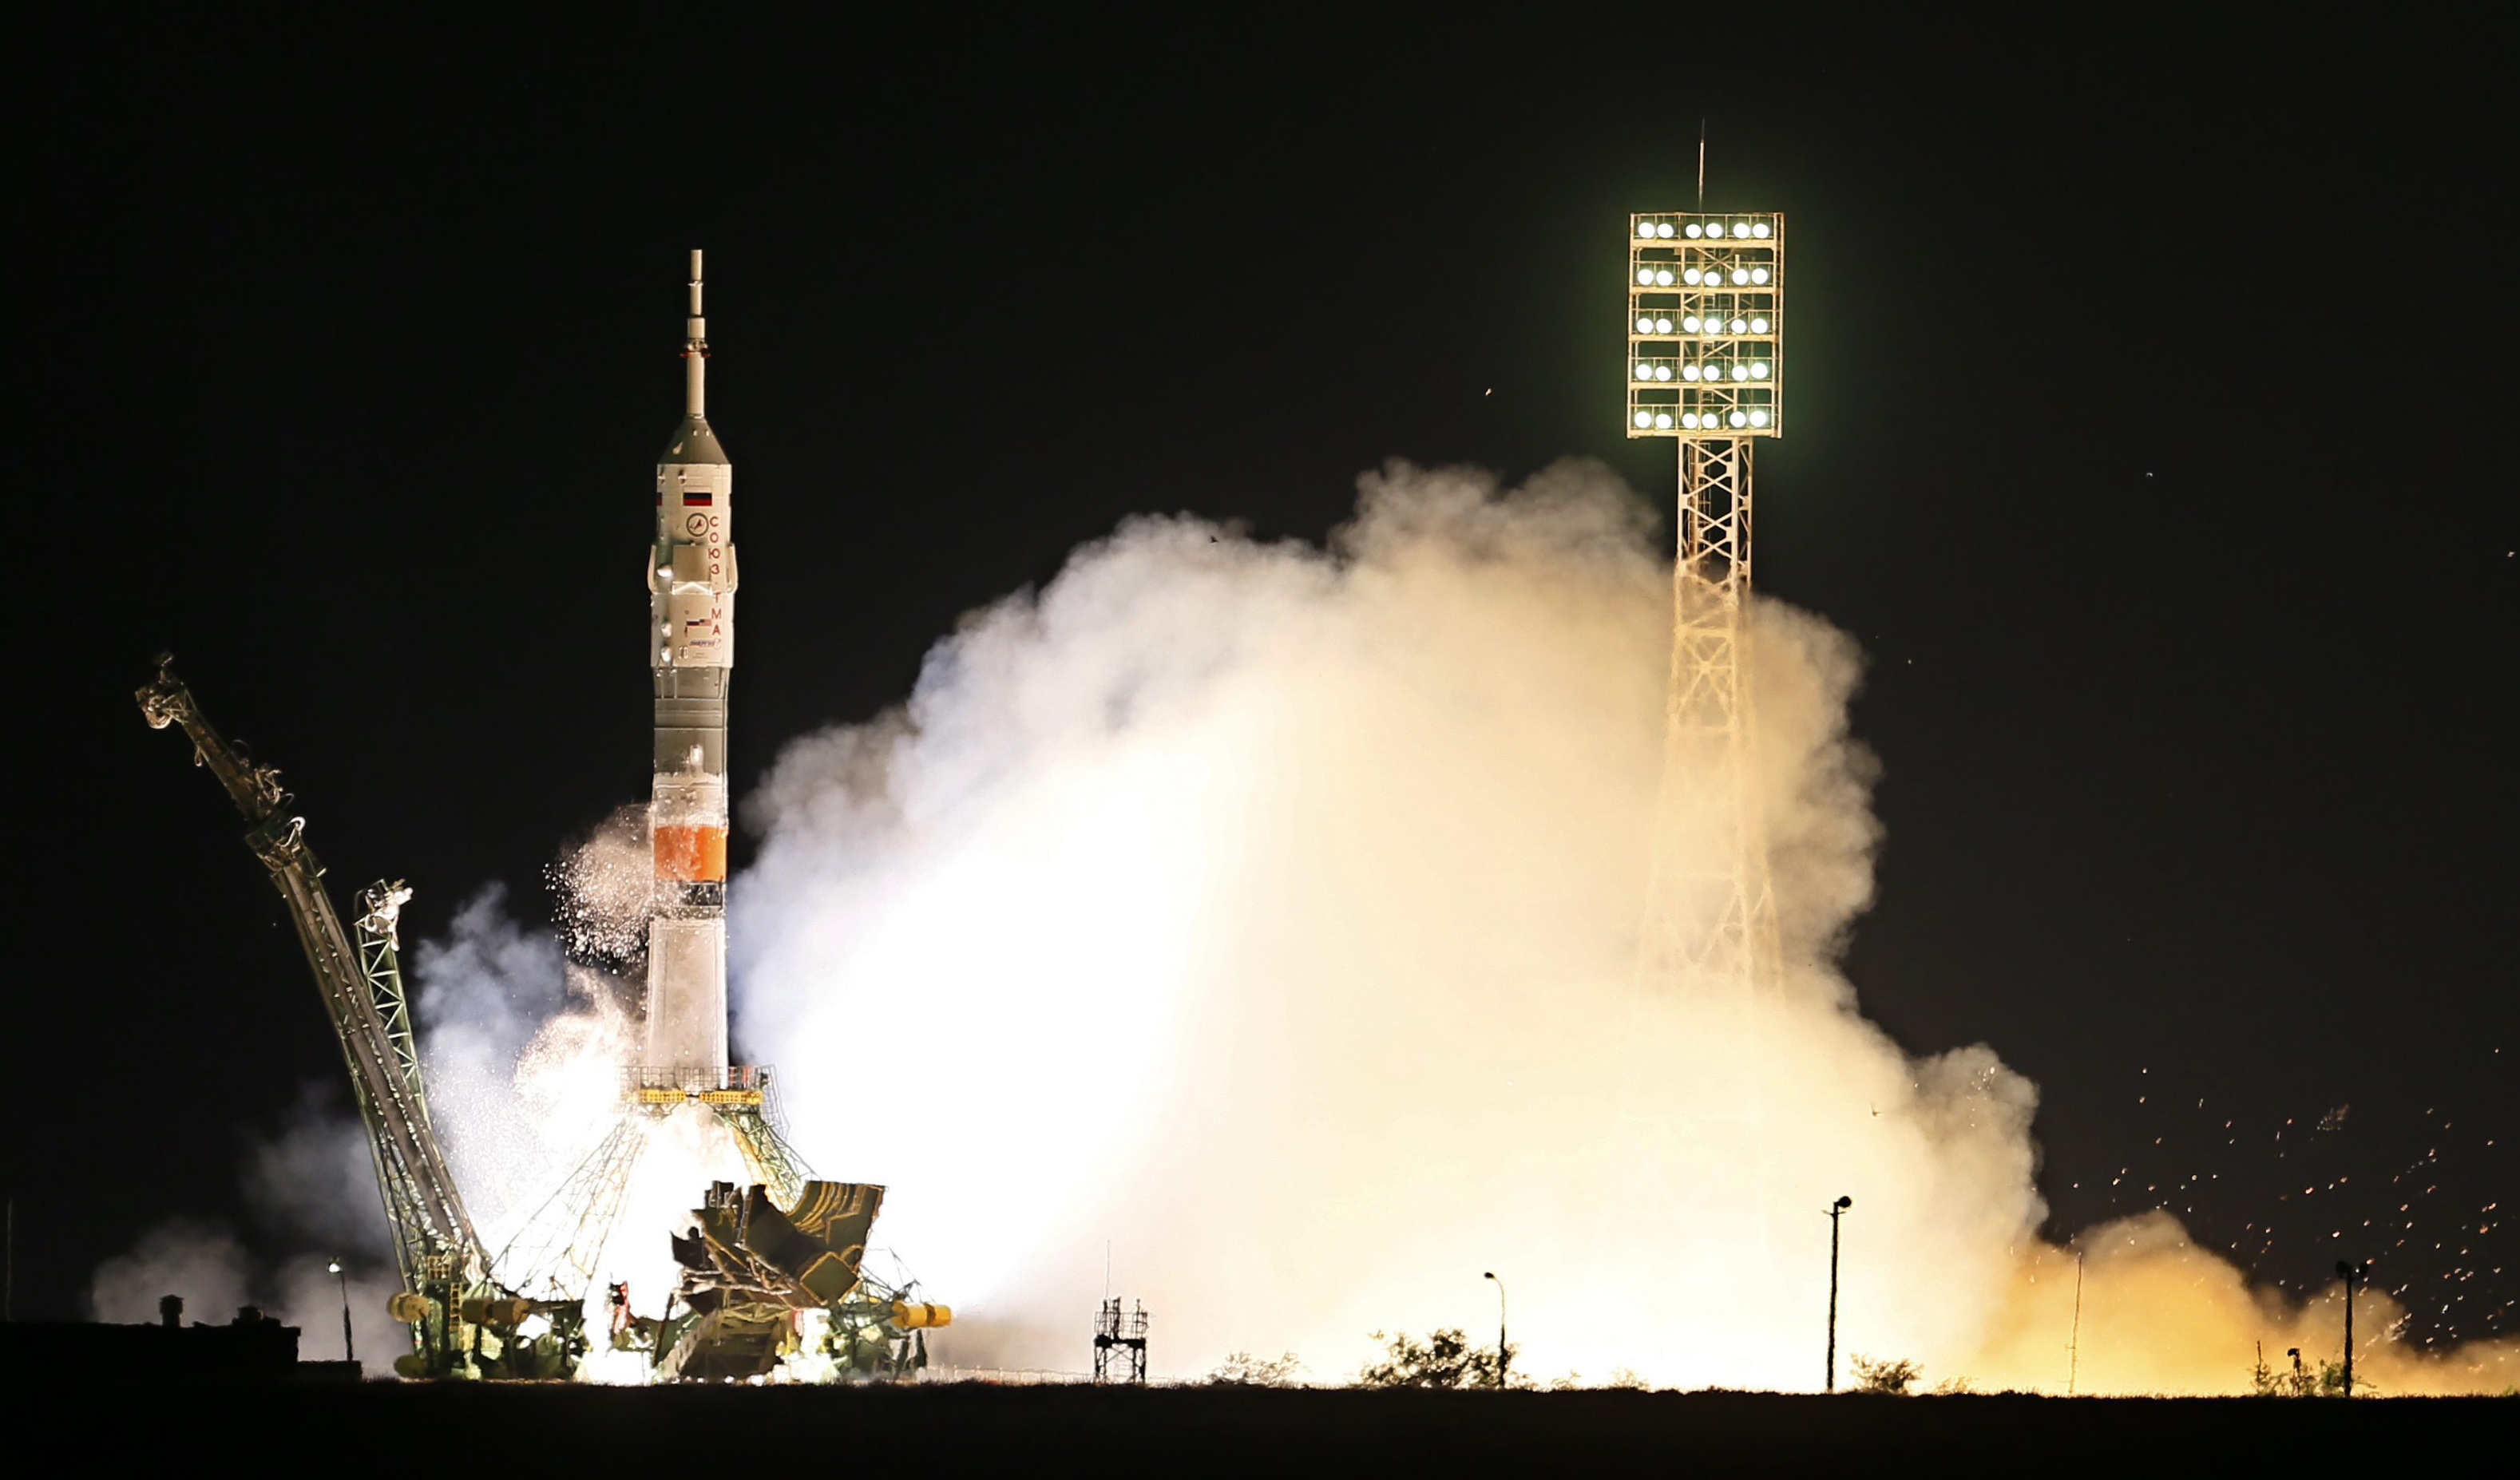 The Soyuz blast off from Baikonur cosmodrome